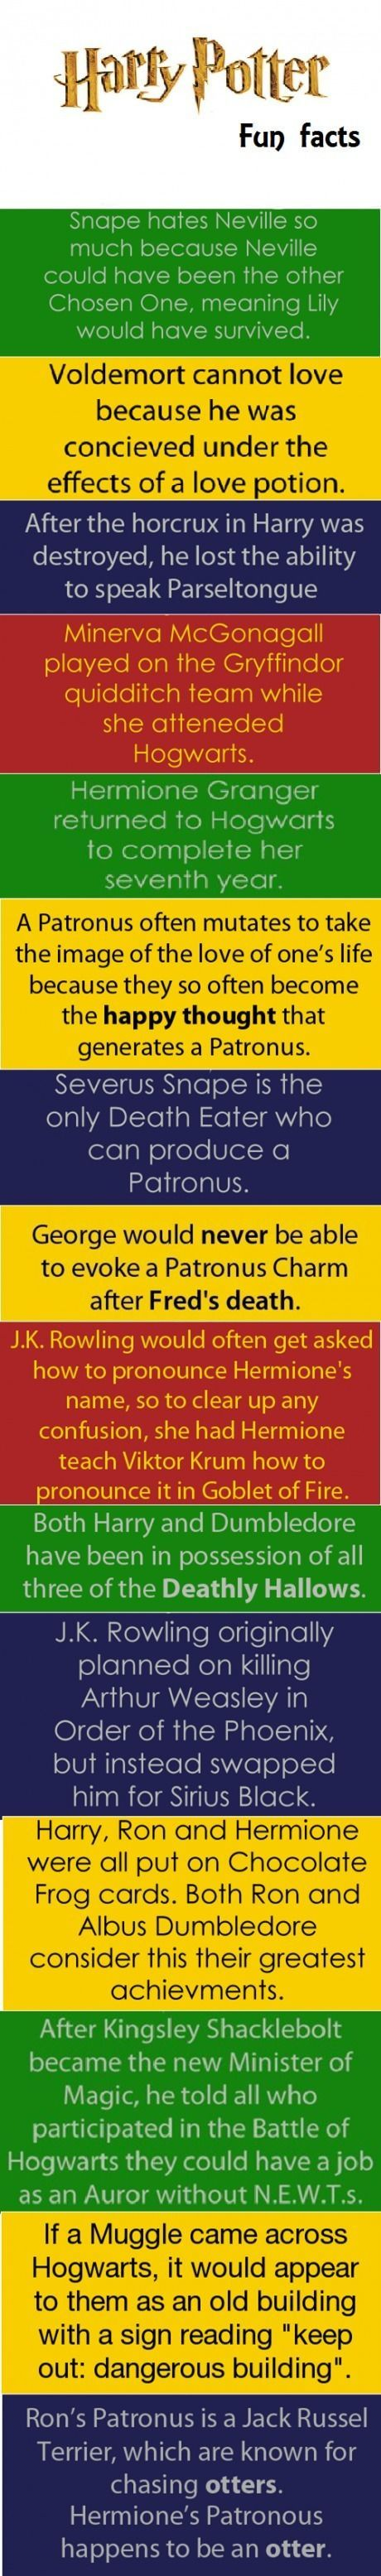 Harry Potter facts you probably didn't know. (I didn't!)